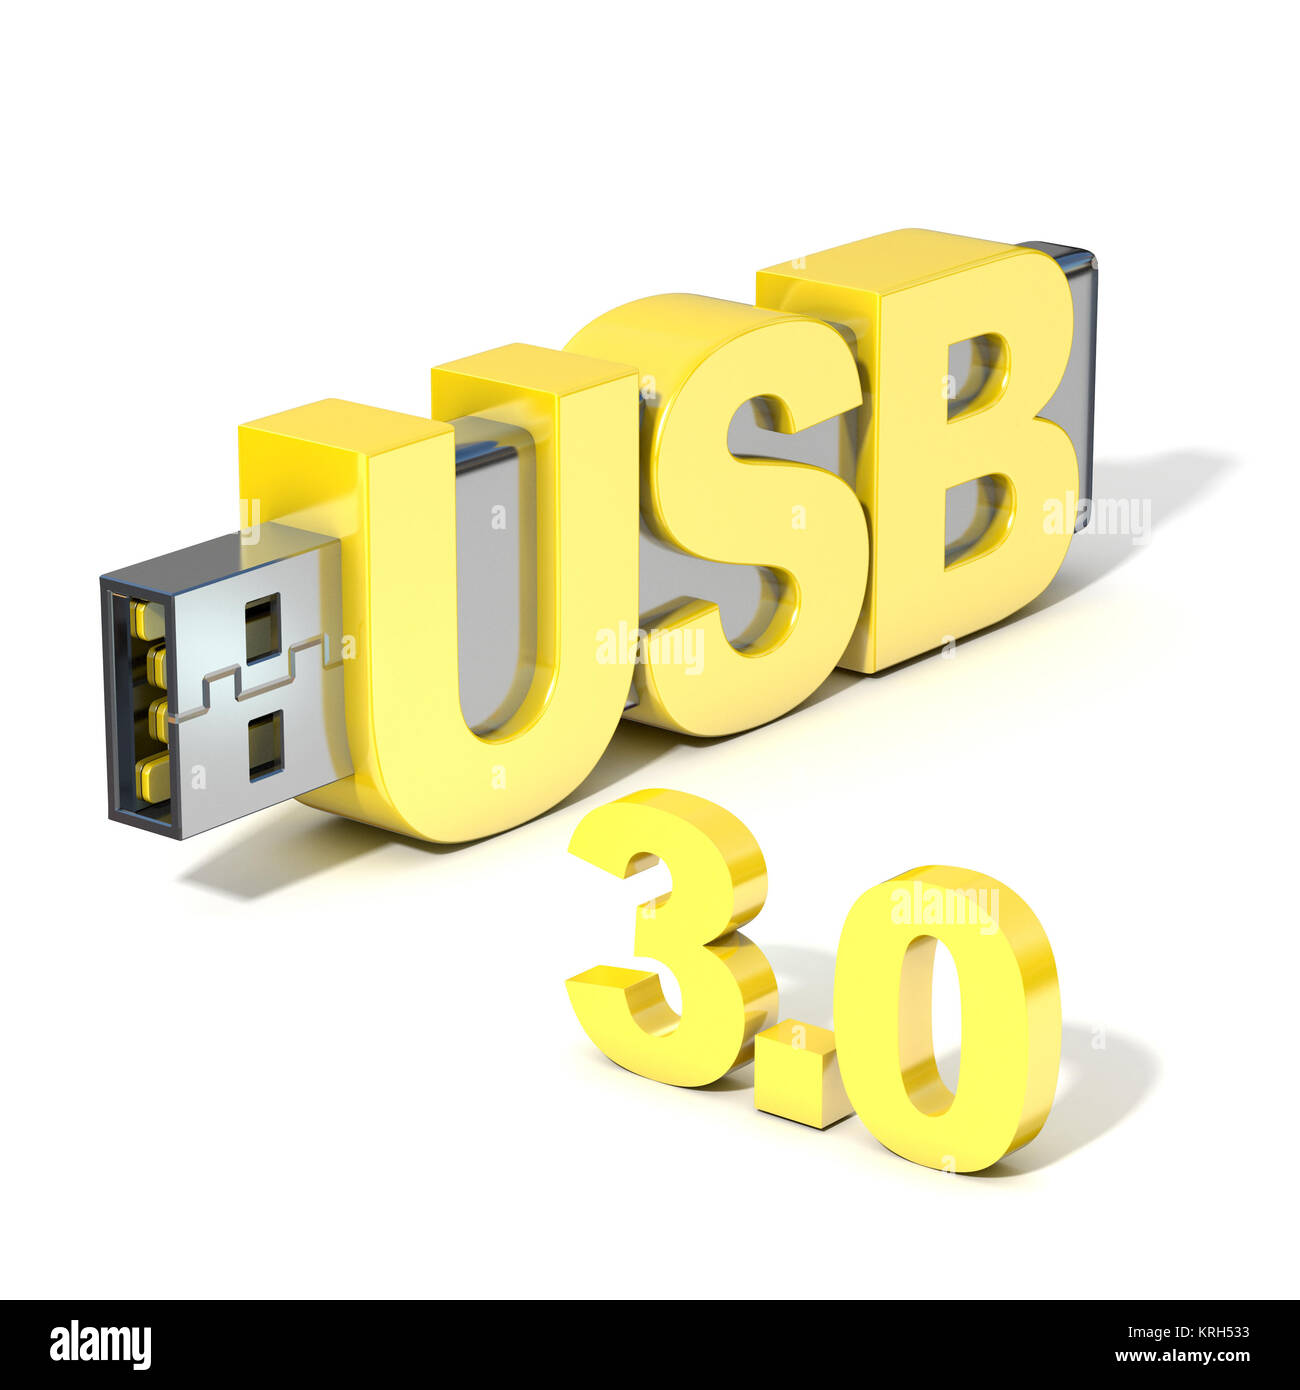 USB flash memory 3.0, made with the word USB. 3D - Stock Image